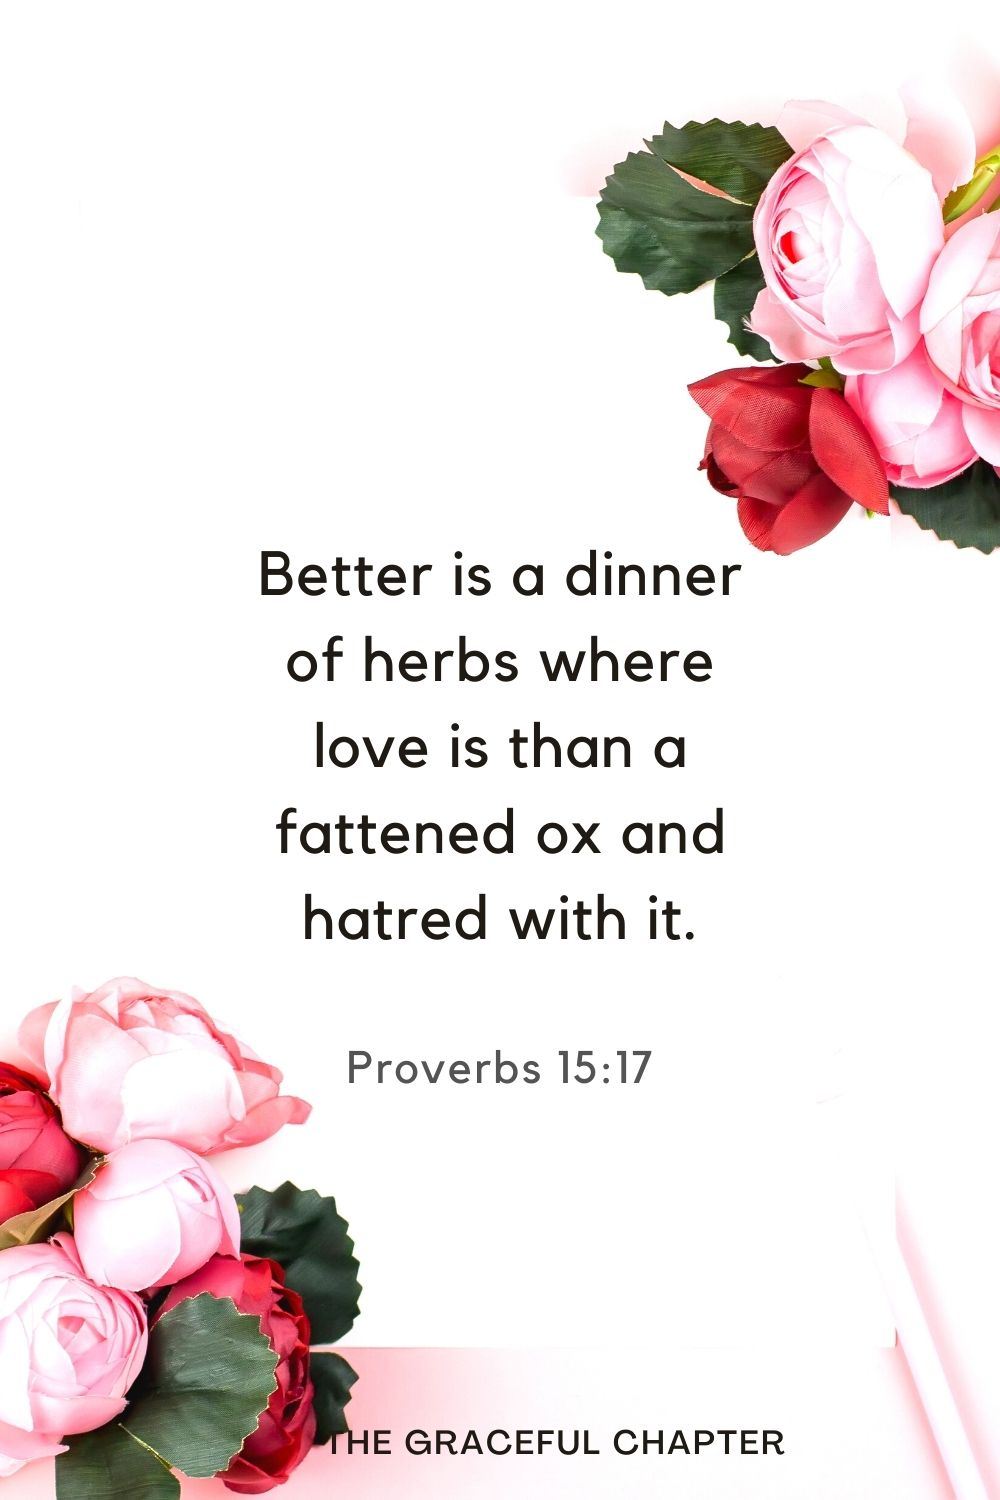 Better is a dinner of herbs where love is than a fattened ox and hatred with it. Proverbs 15:17